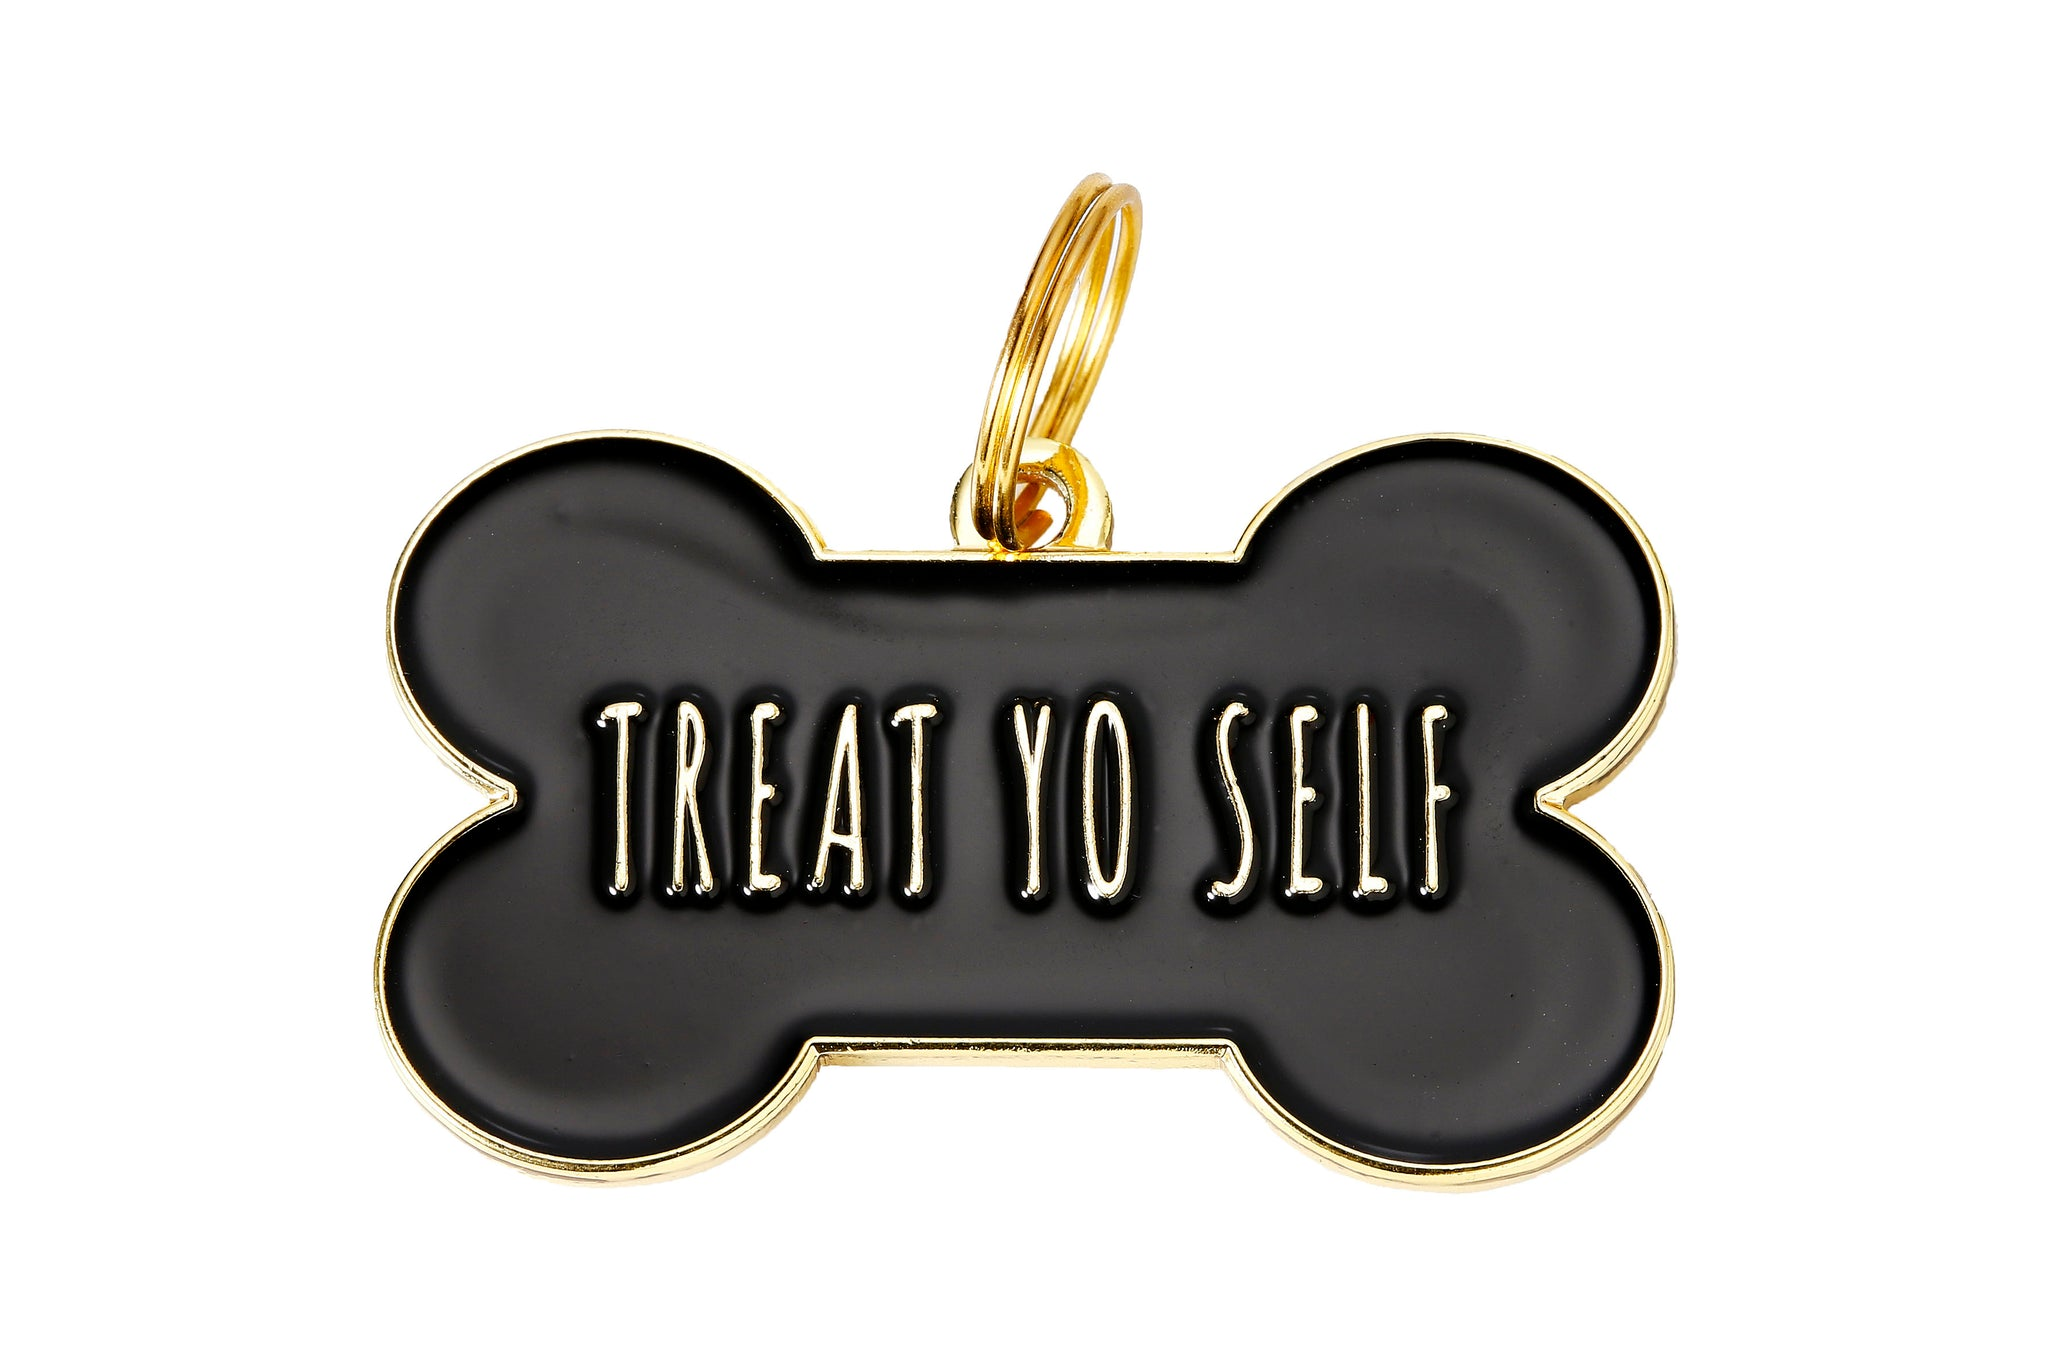 'Treat Yo Self' Collar Tag